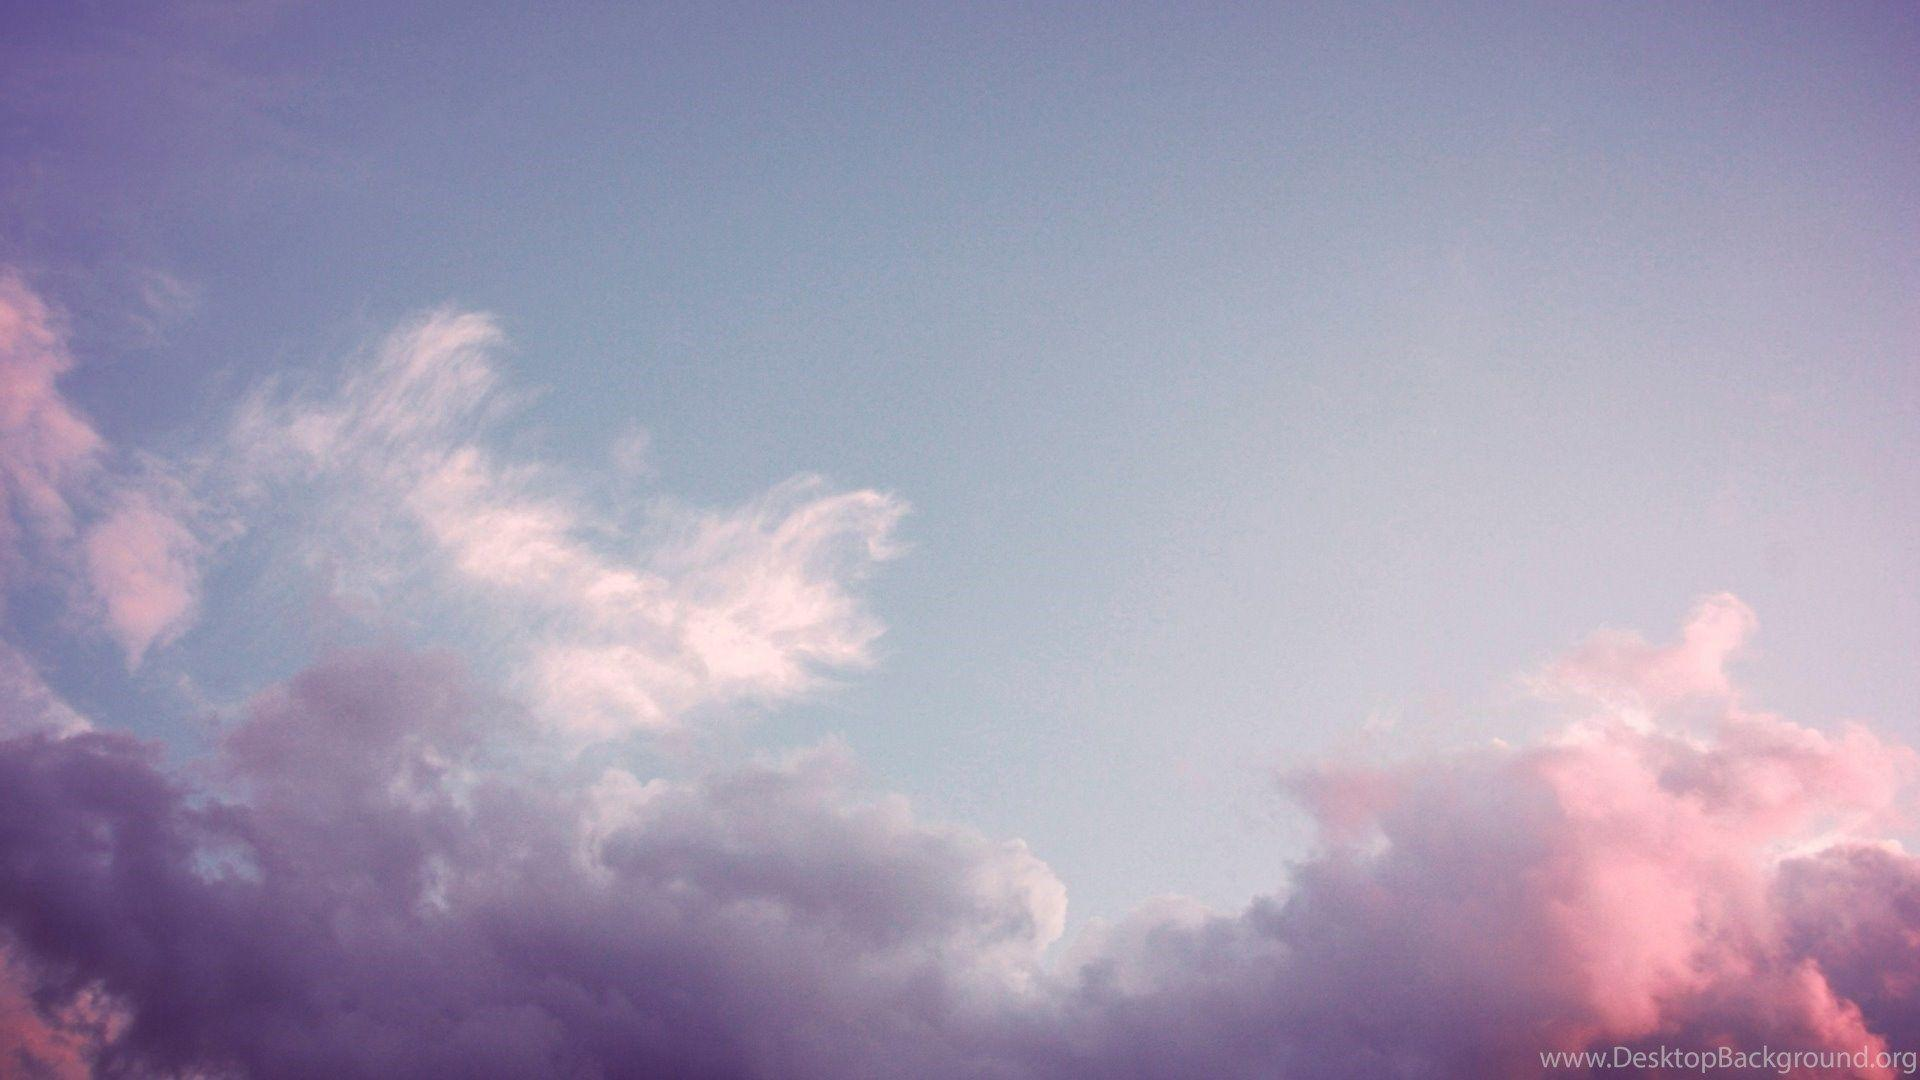 Clouds Tumblr Laptop Wallpapers Wallpaper Cave